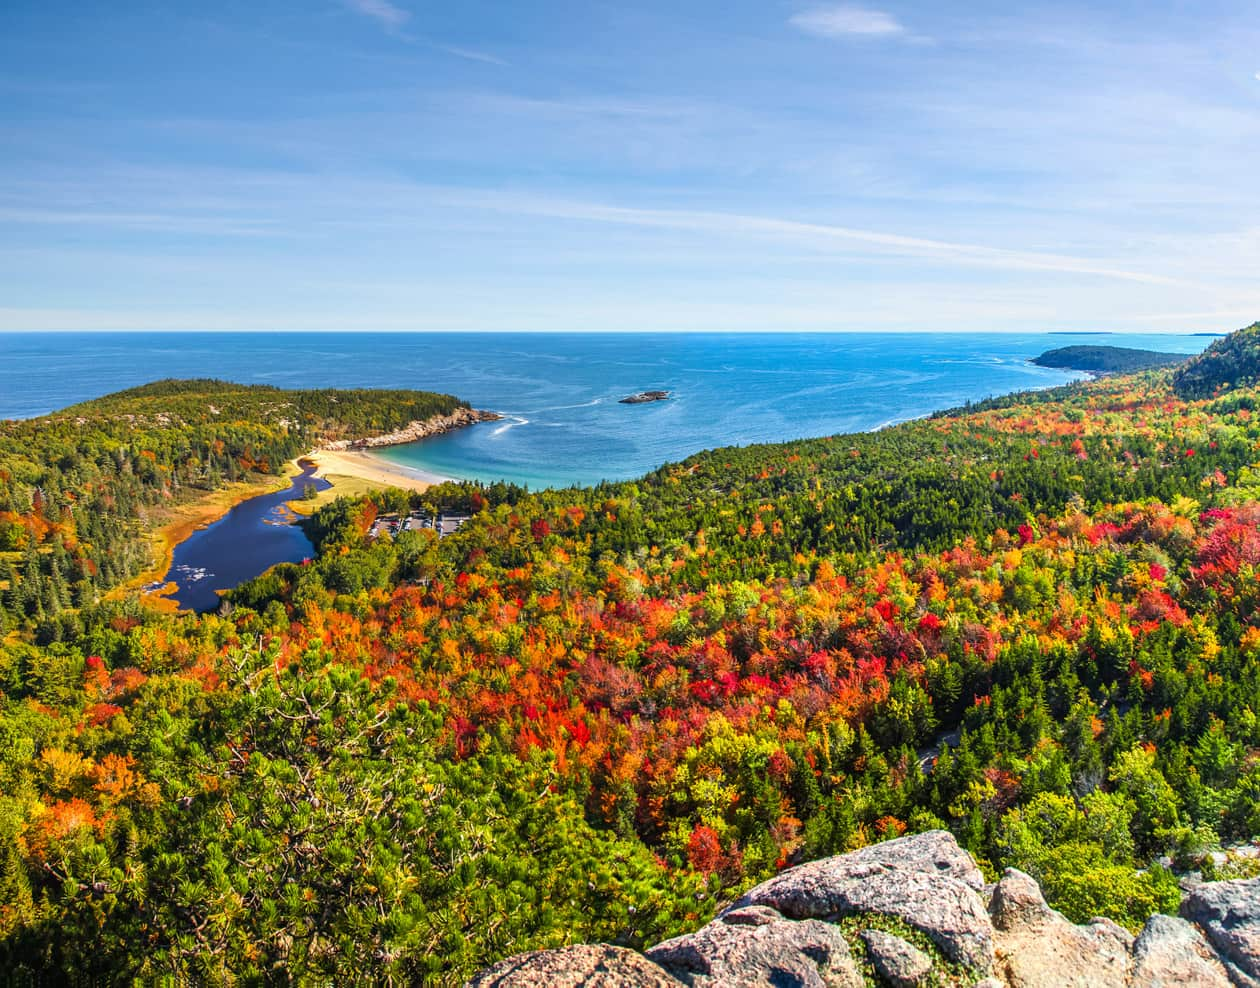 A scenic overlook at Acadia National Park